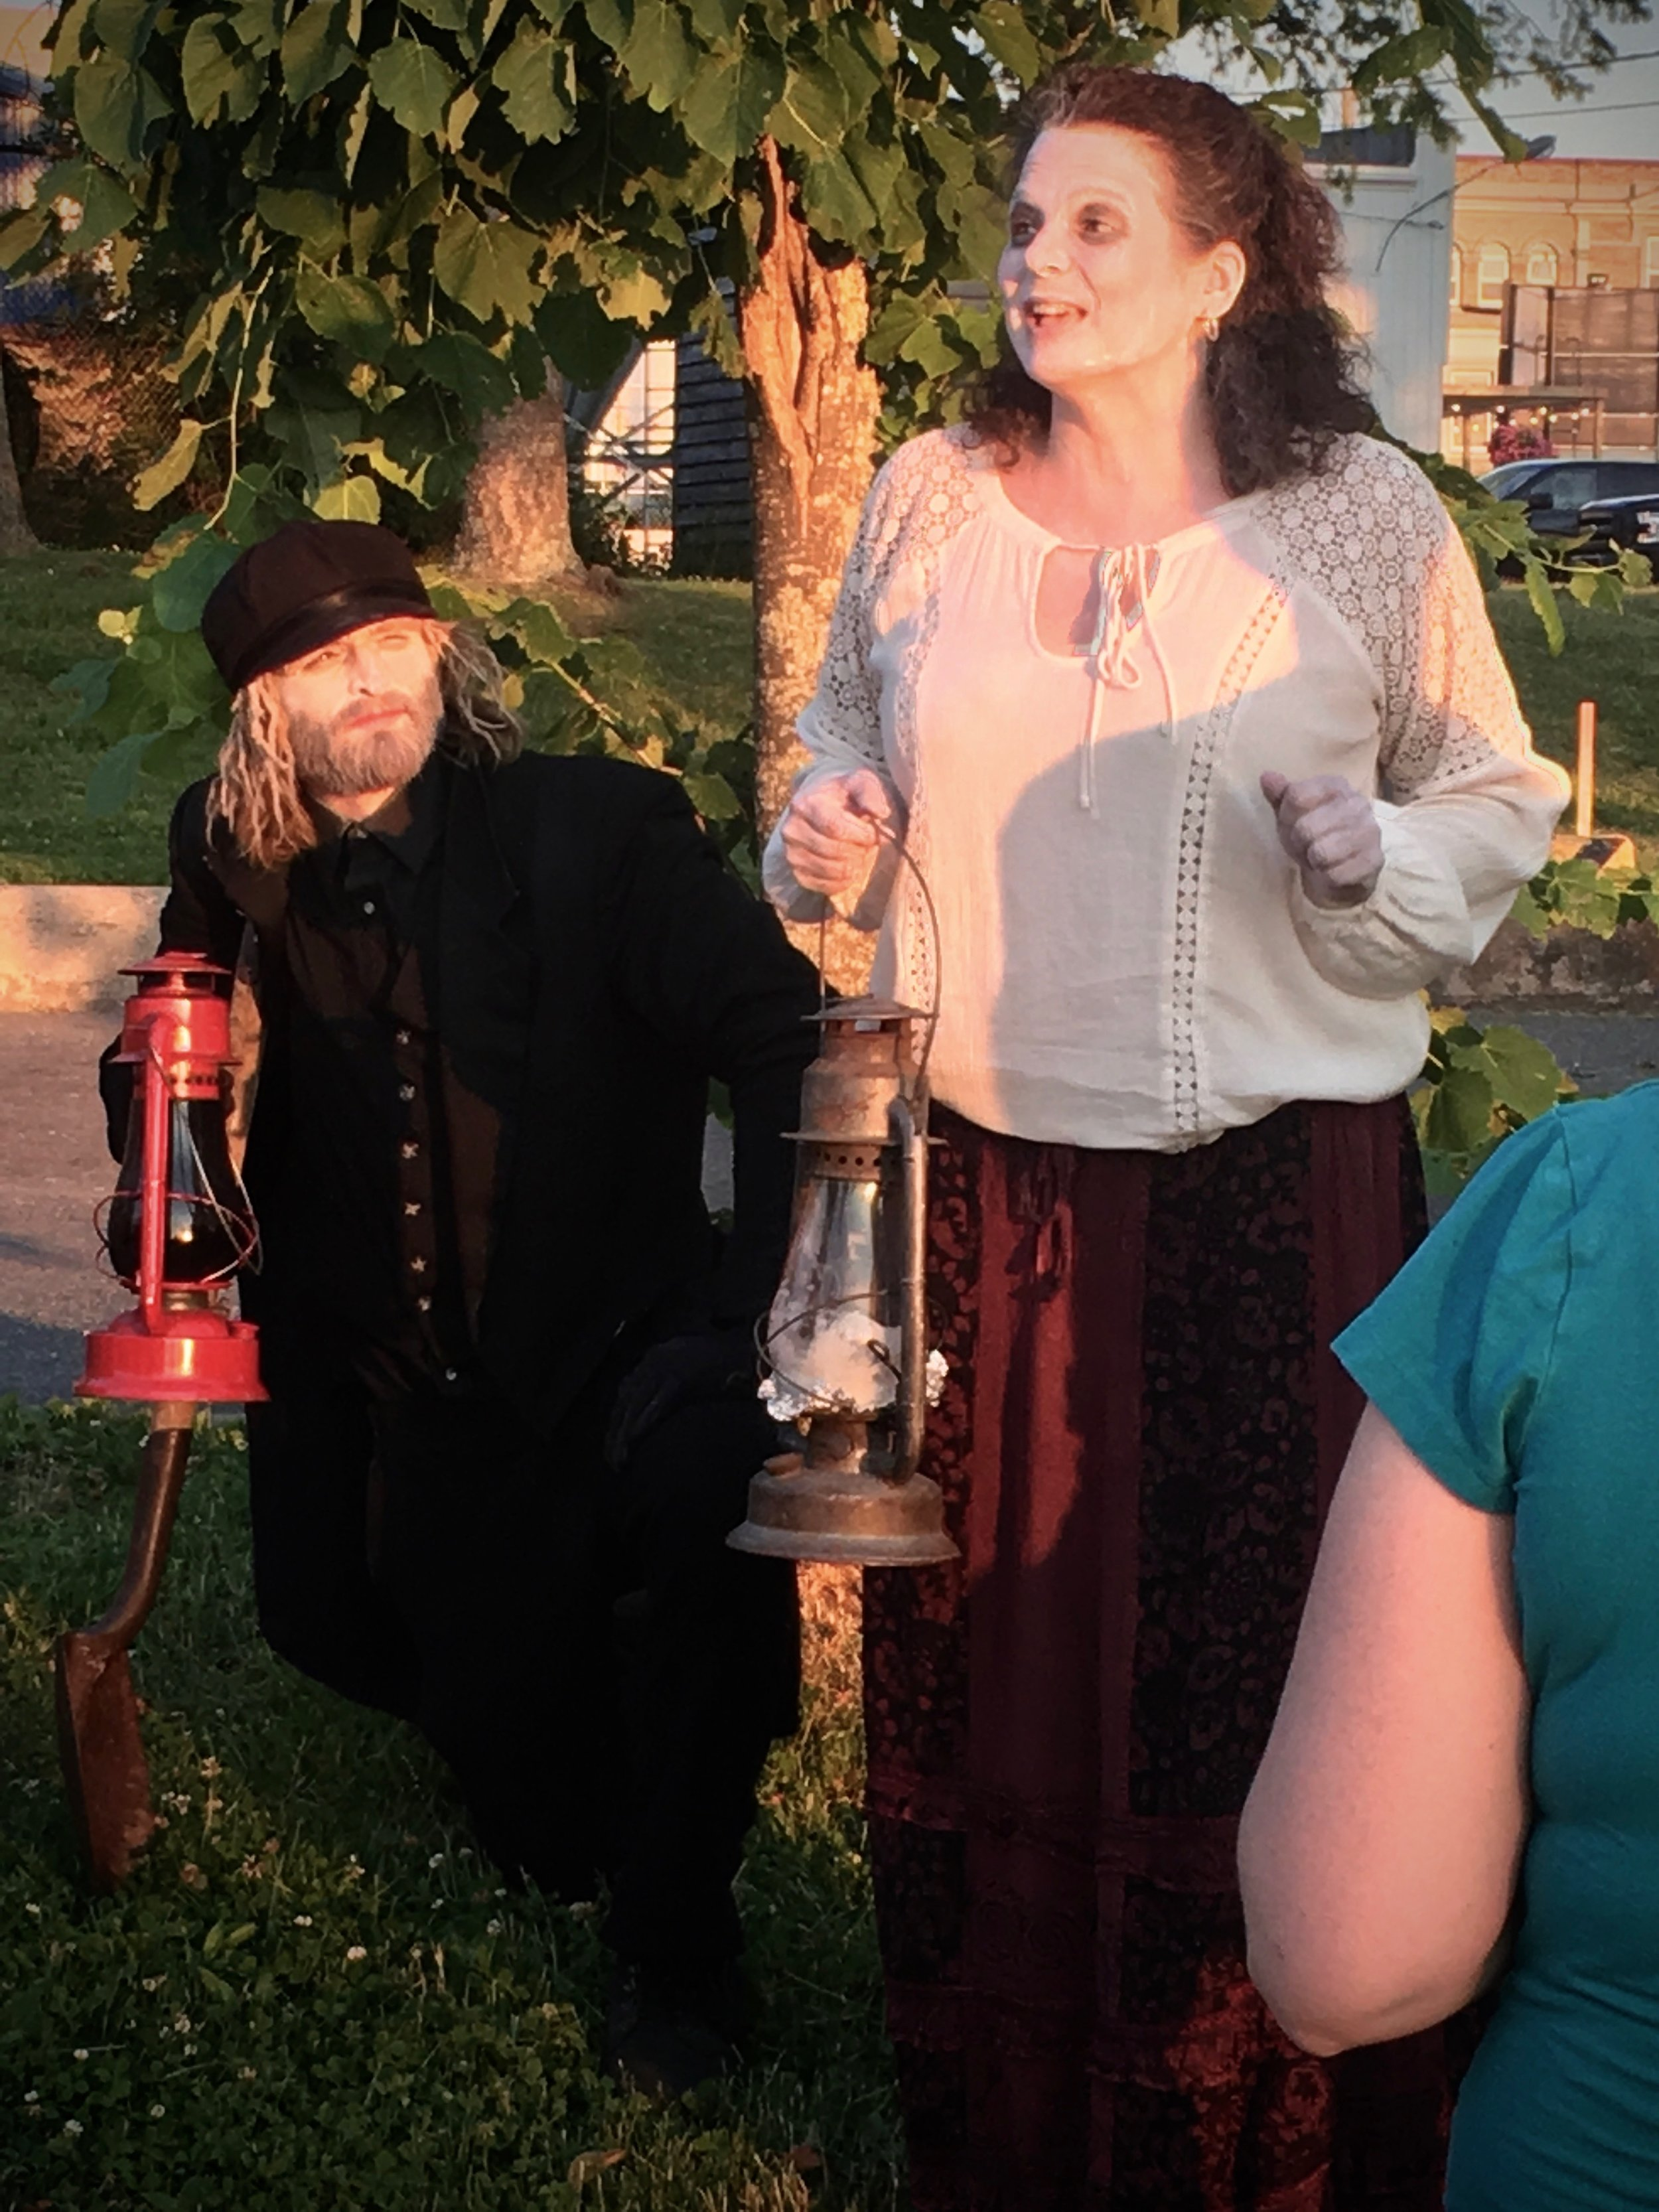 Picture of Jerome the Gravekeeper and one of the ghosts telling a story  Photo credits: Holly Lohnes